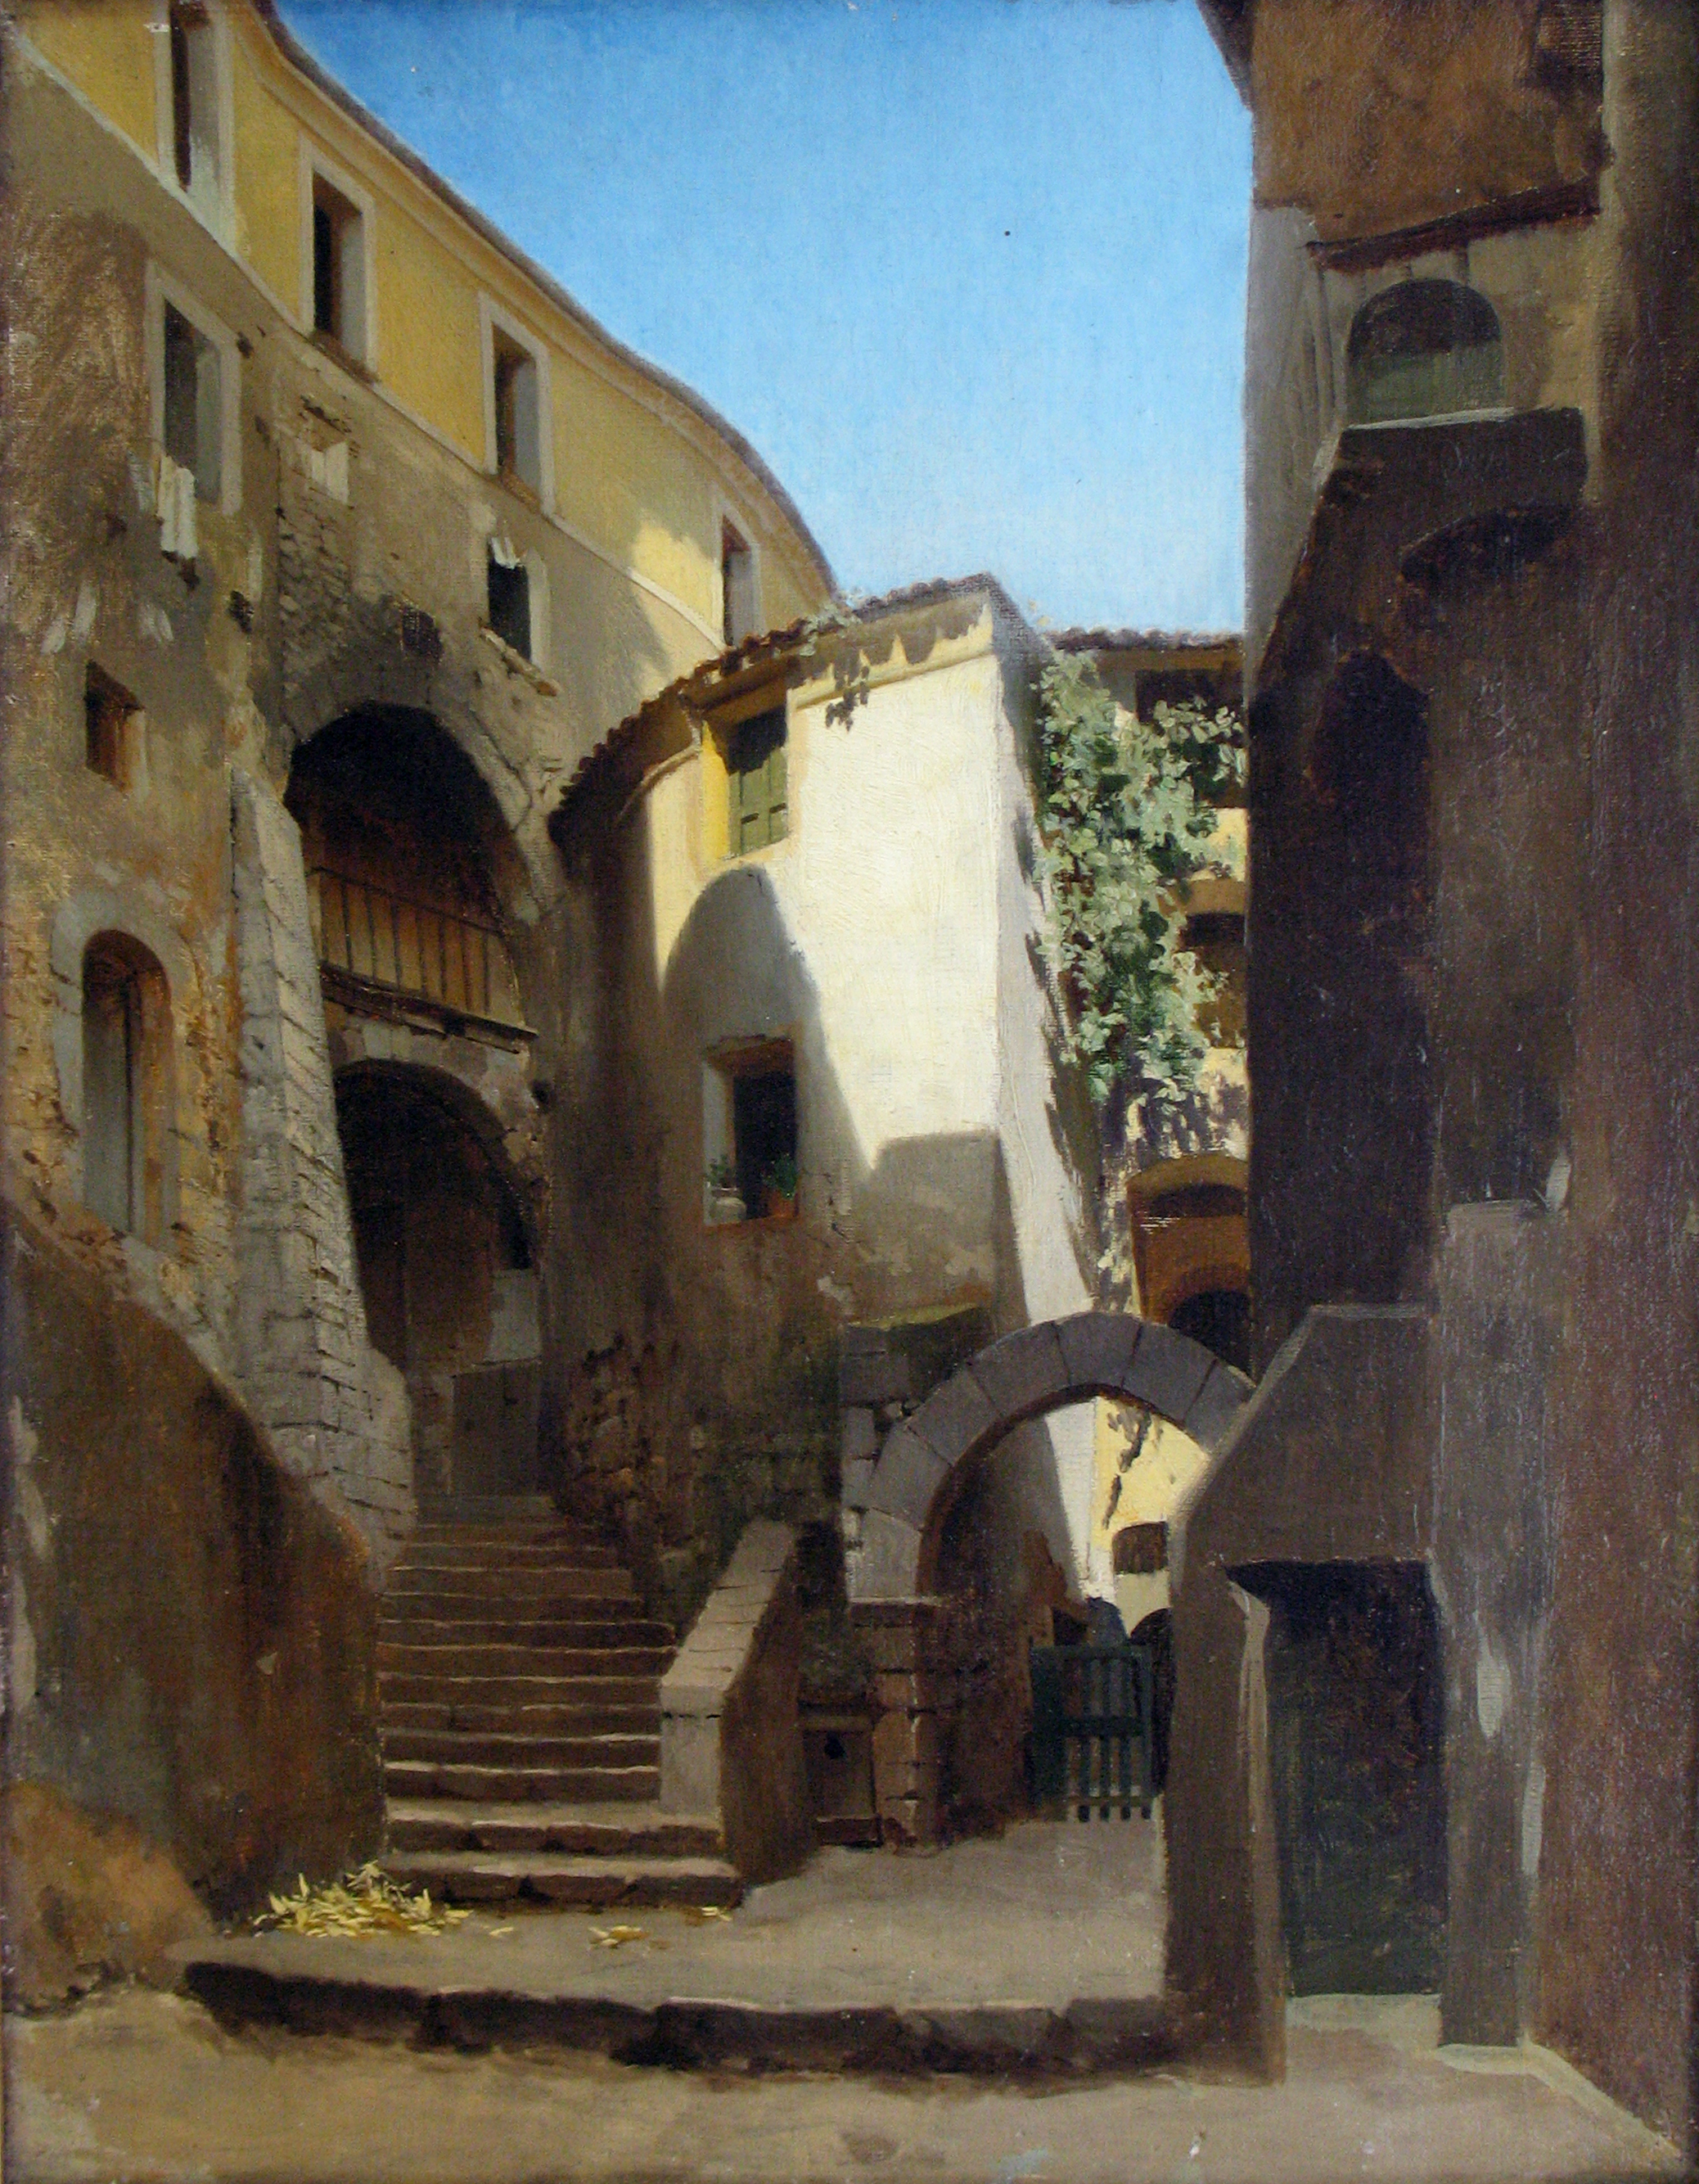 Street in Italy, 1850